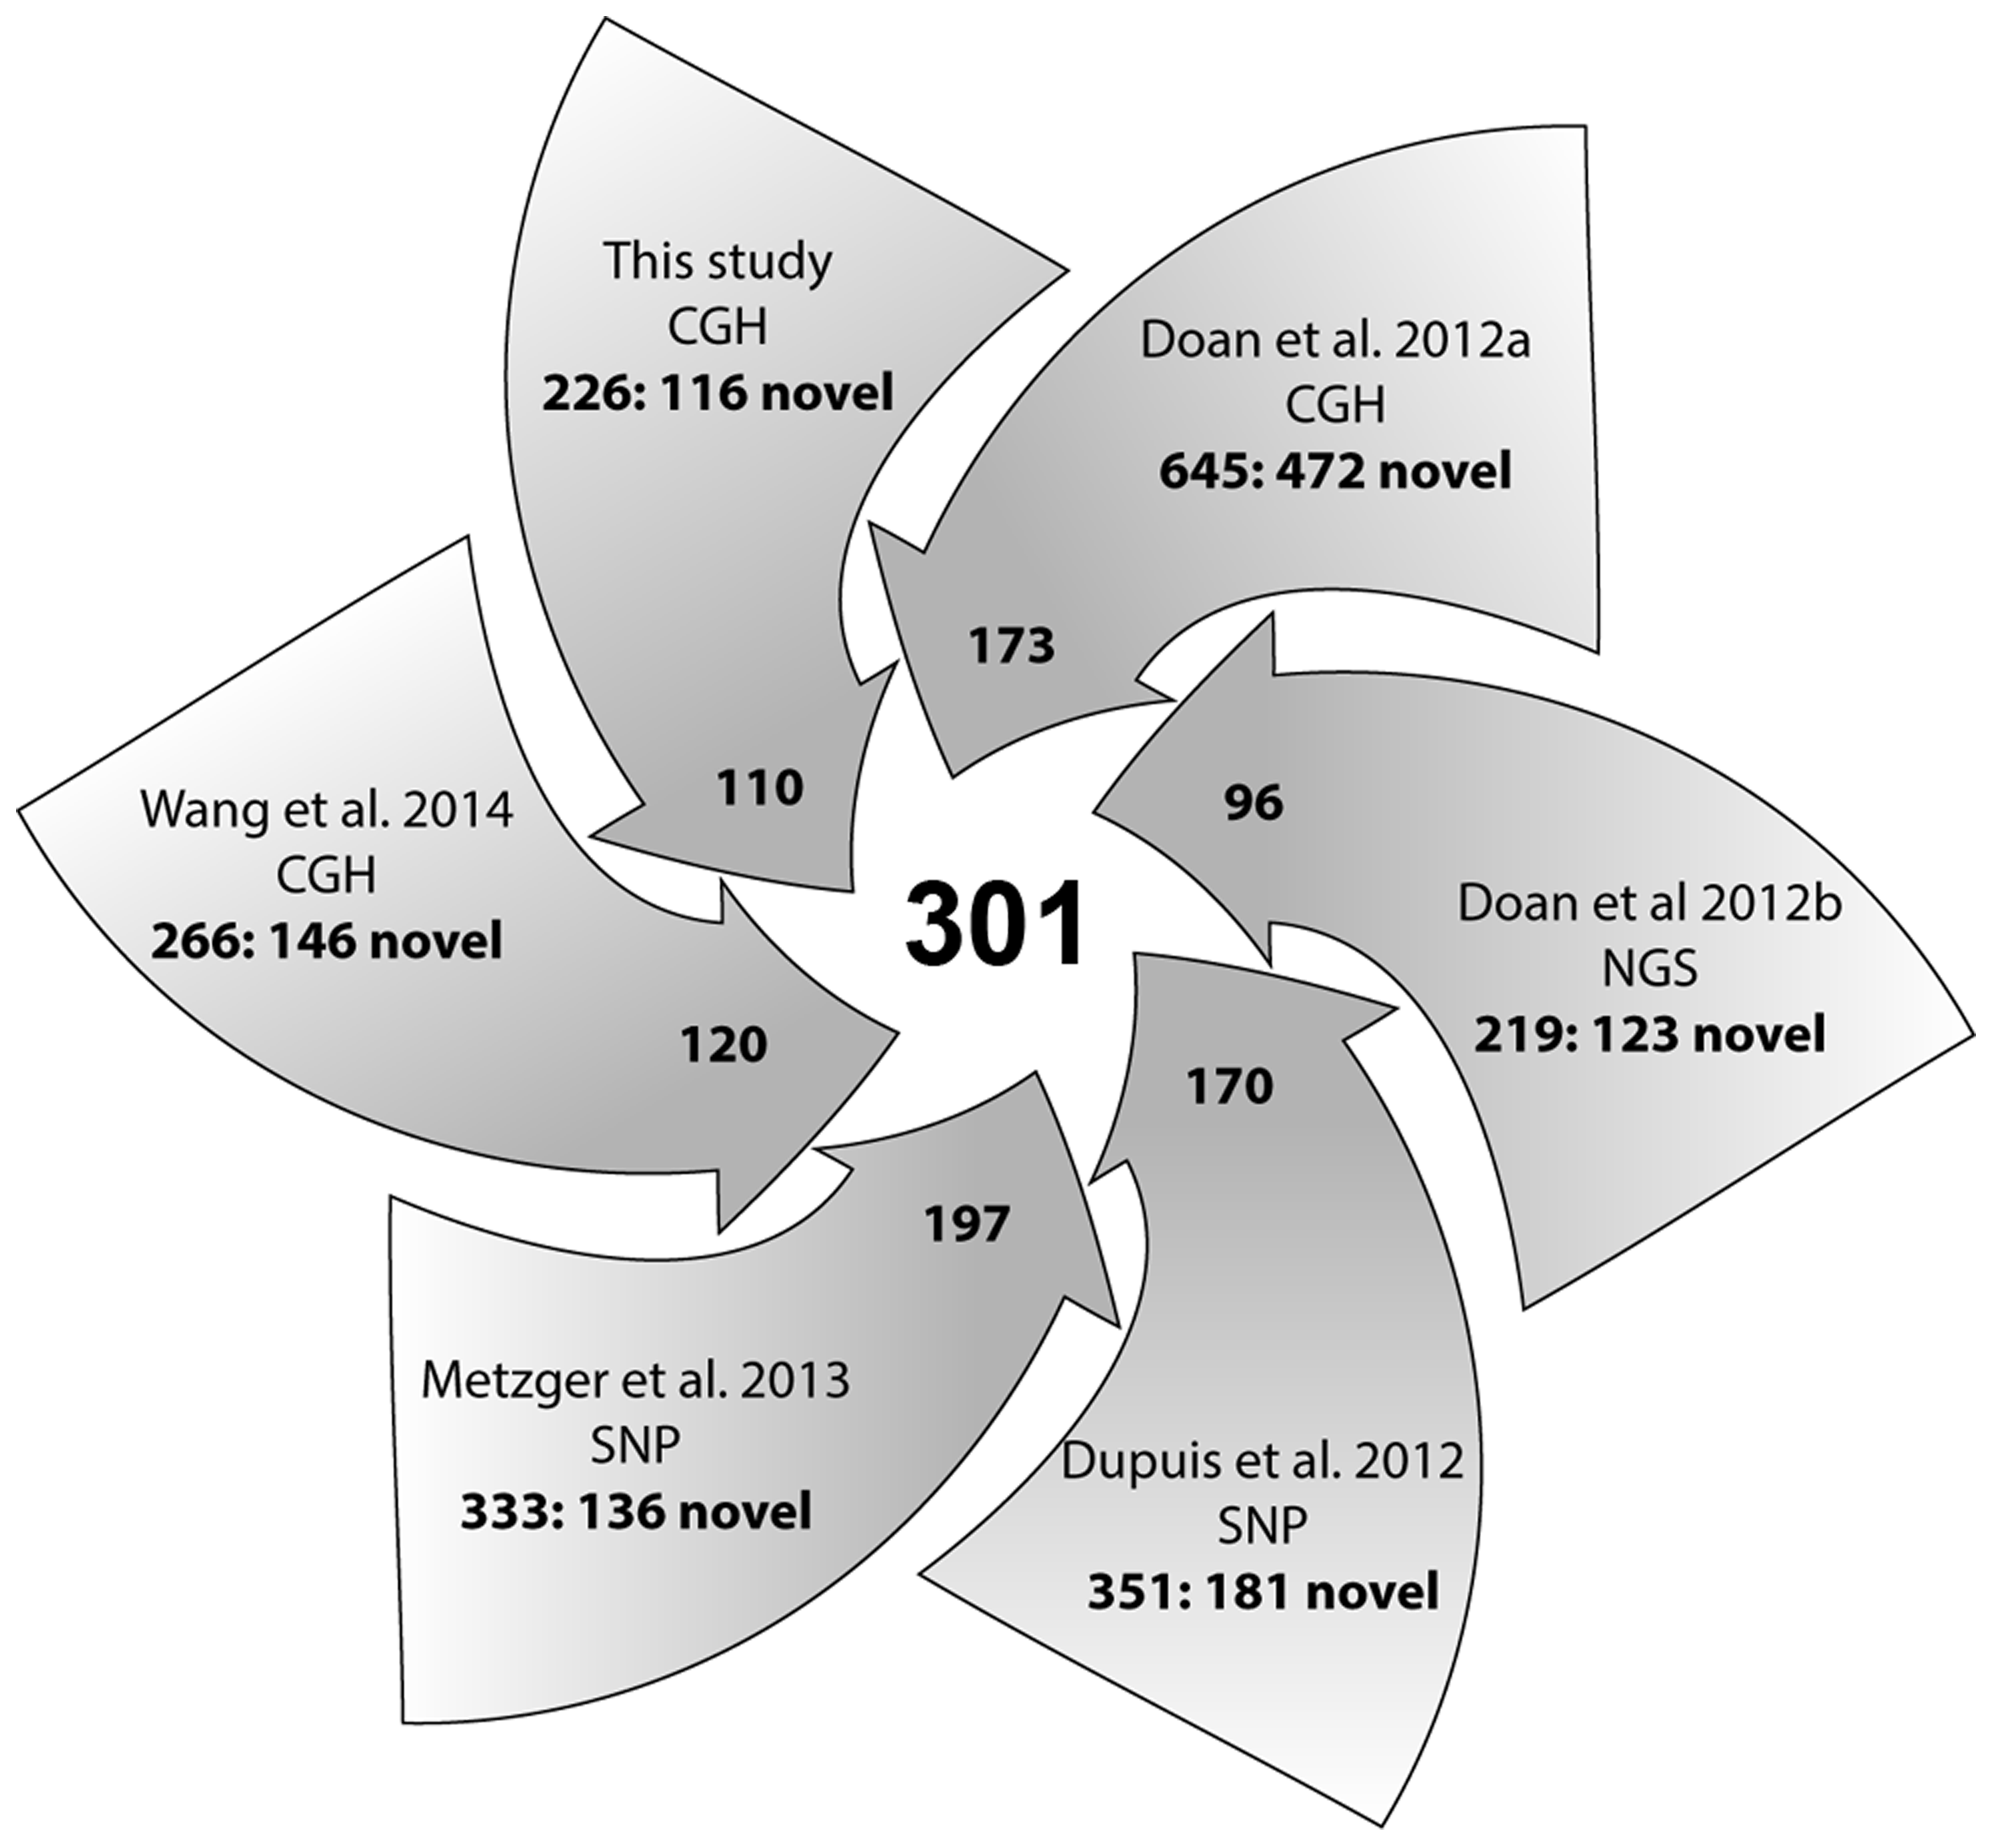 A summary diagram of all CNV studies in horses and their contribution to the integrated CNV dataset.